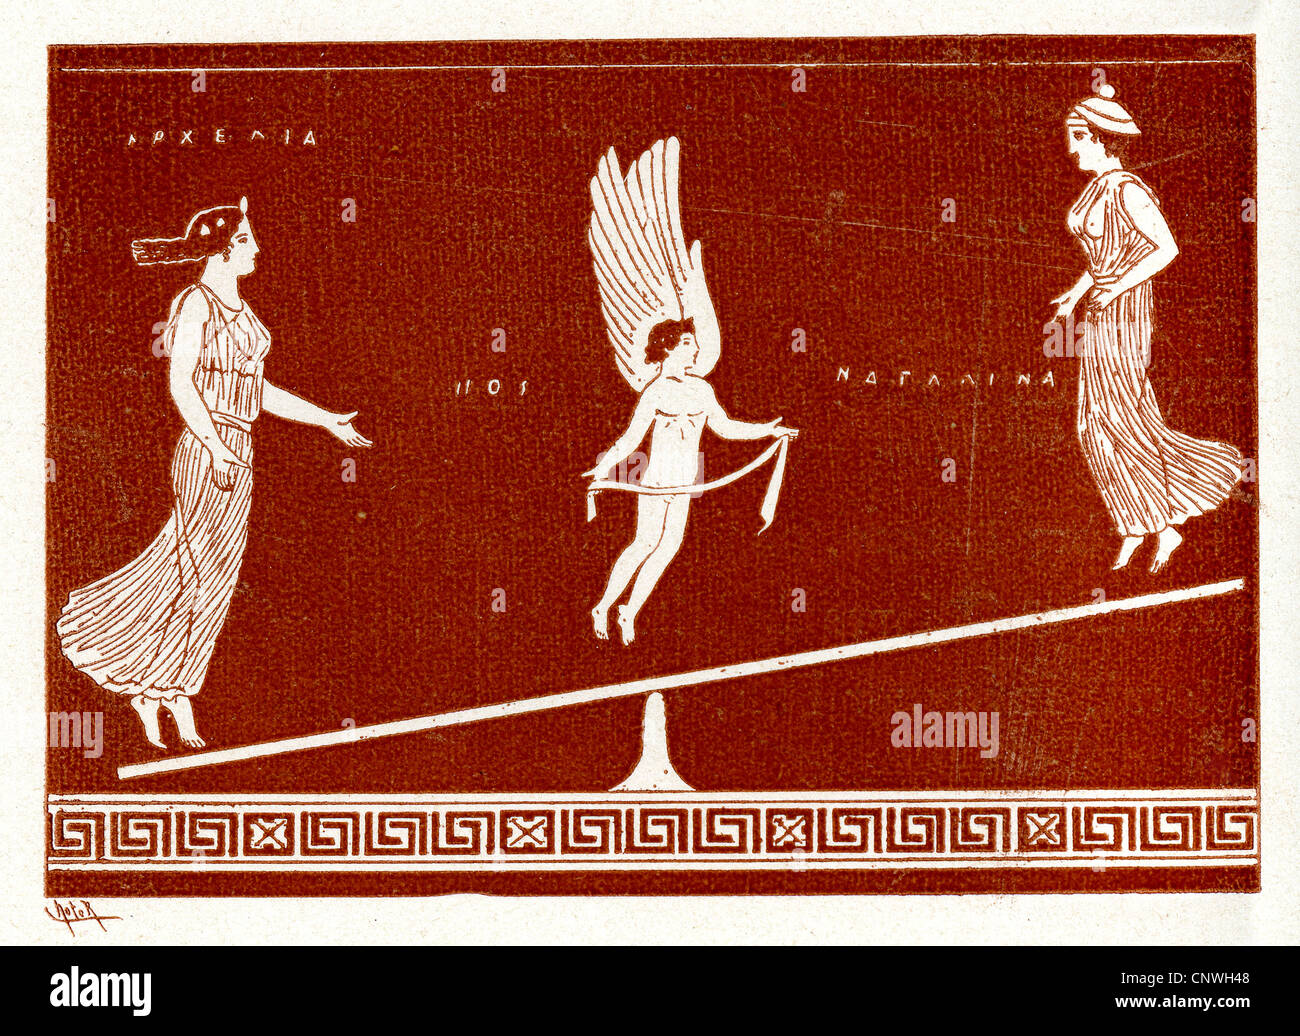 A winged figure in the center of a balance between two ancient Greek women - Stock Image